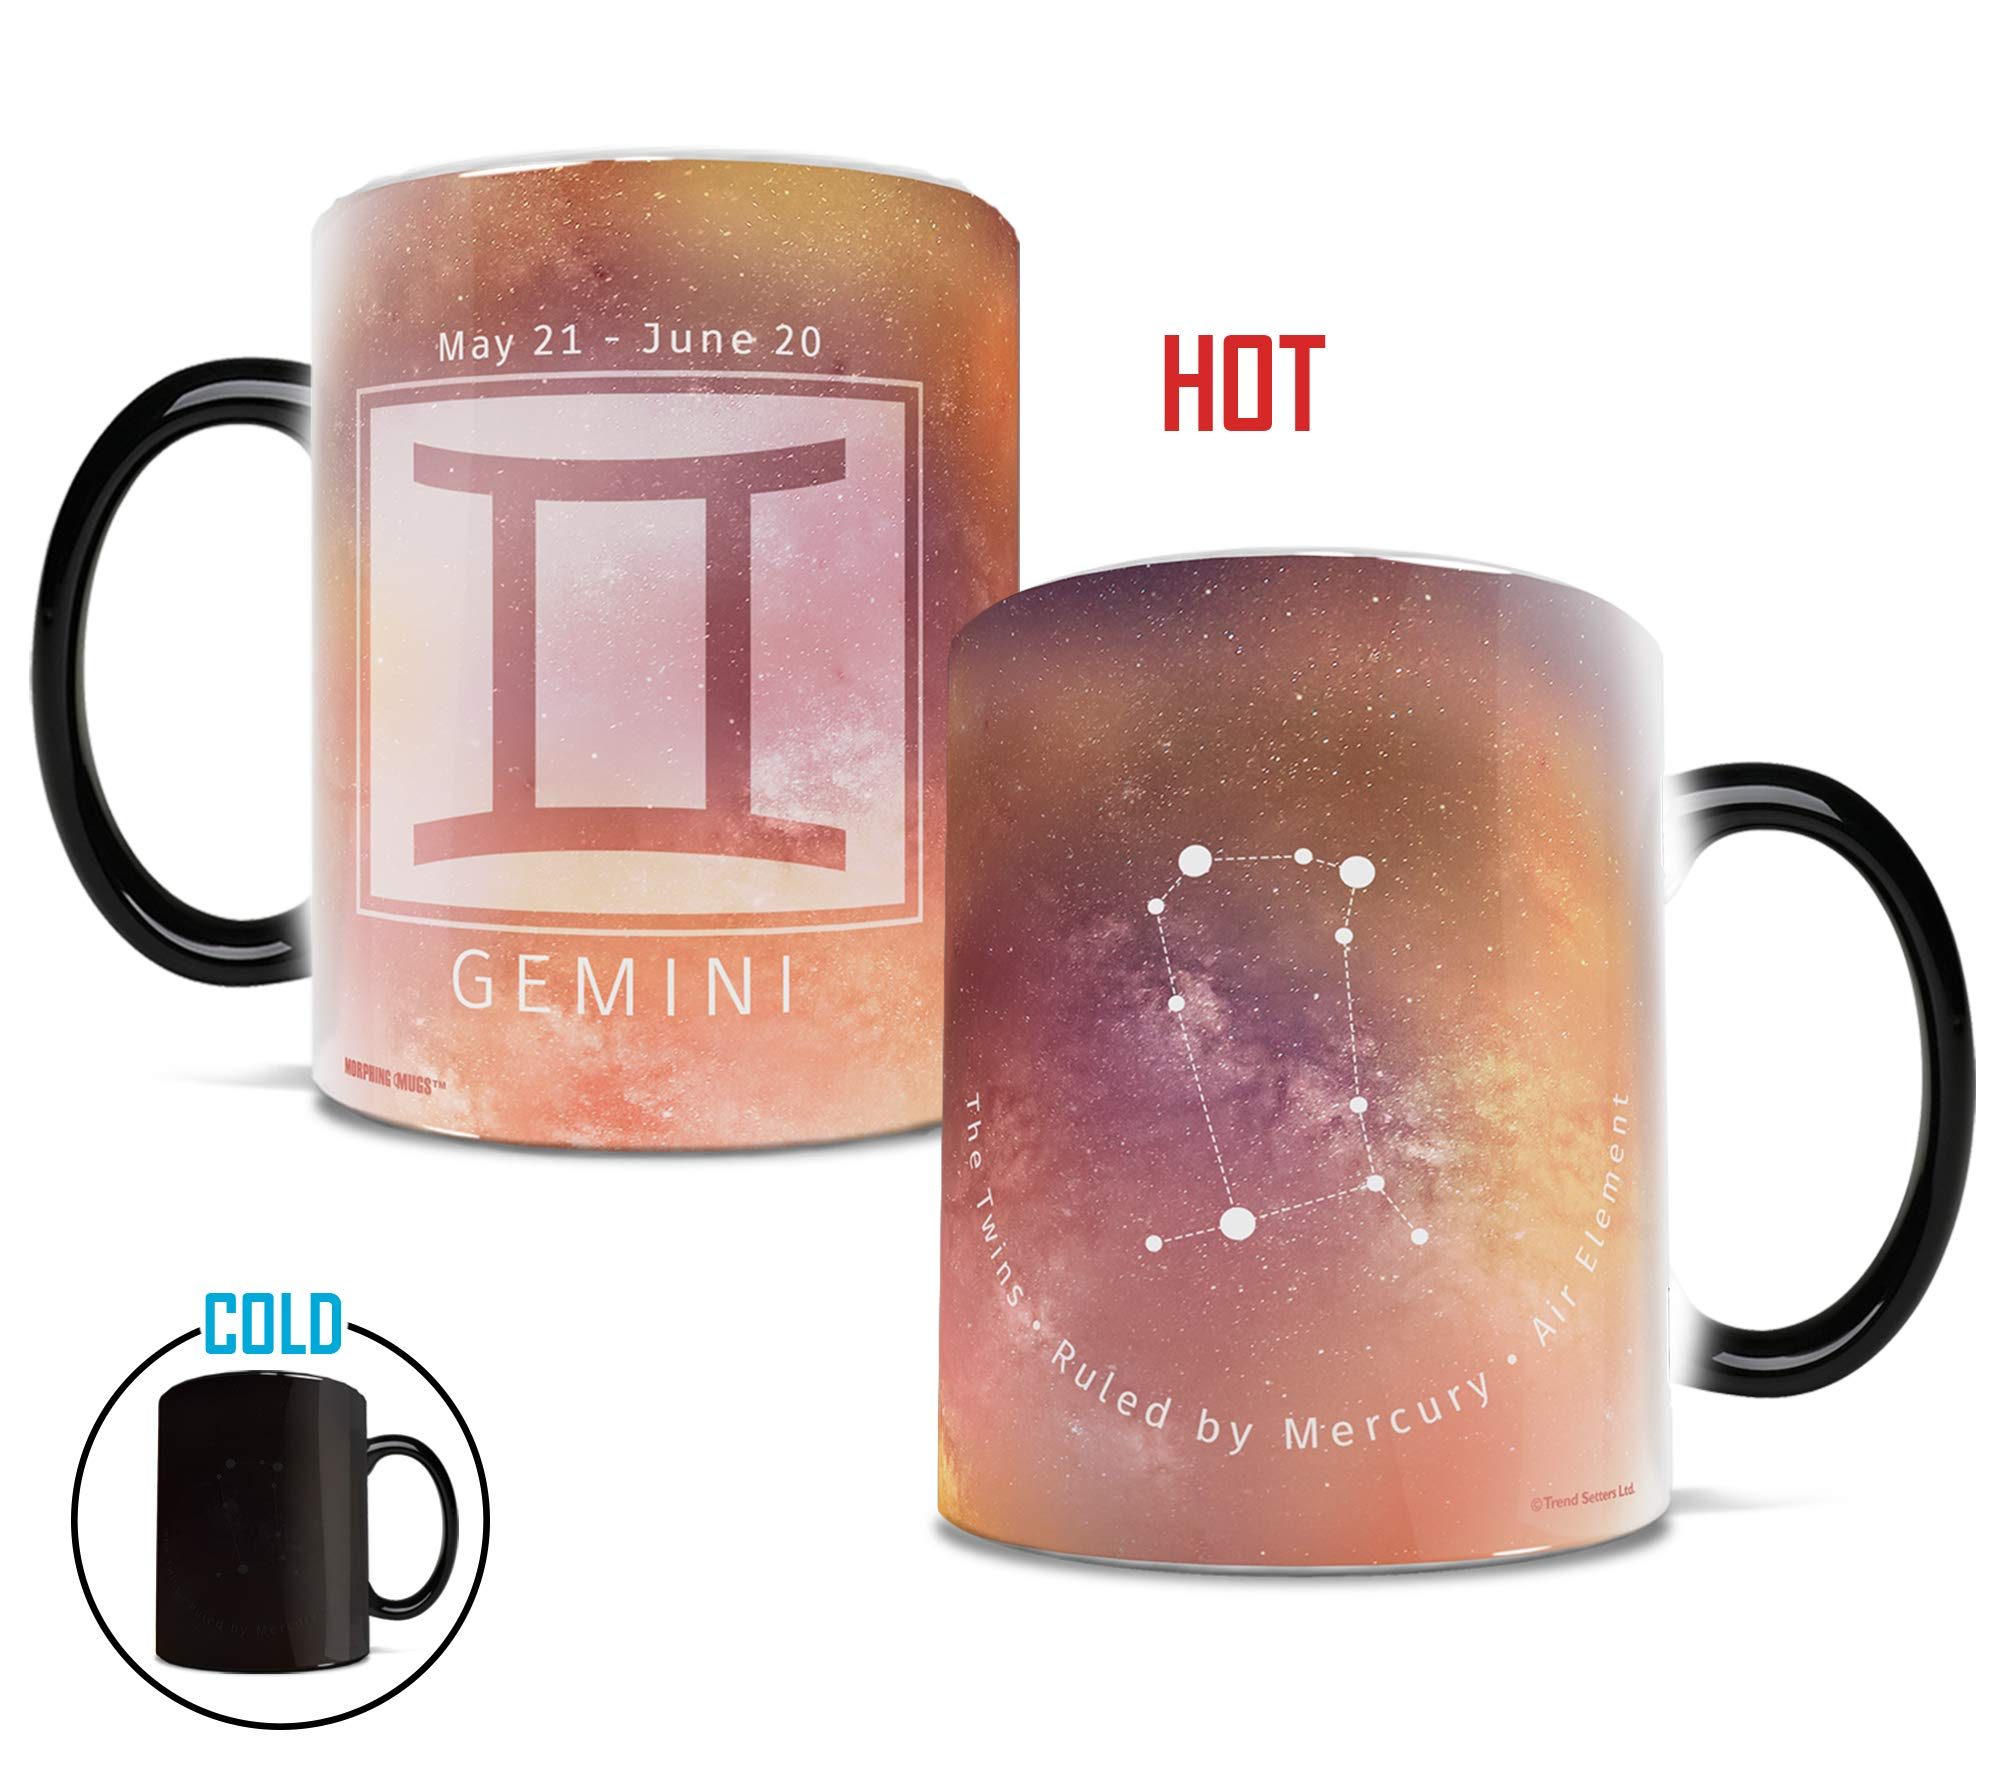 Birthday Zodiac Sign - Gemini - Morphing Mugs Heat Sensitive Mug – Image revealed when HOT liquid is added - One 11oz Ceramic Mug